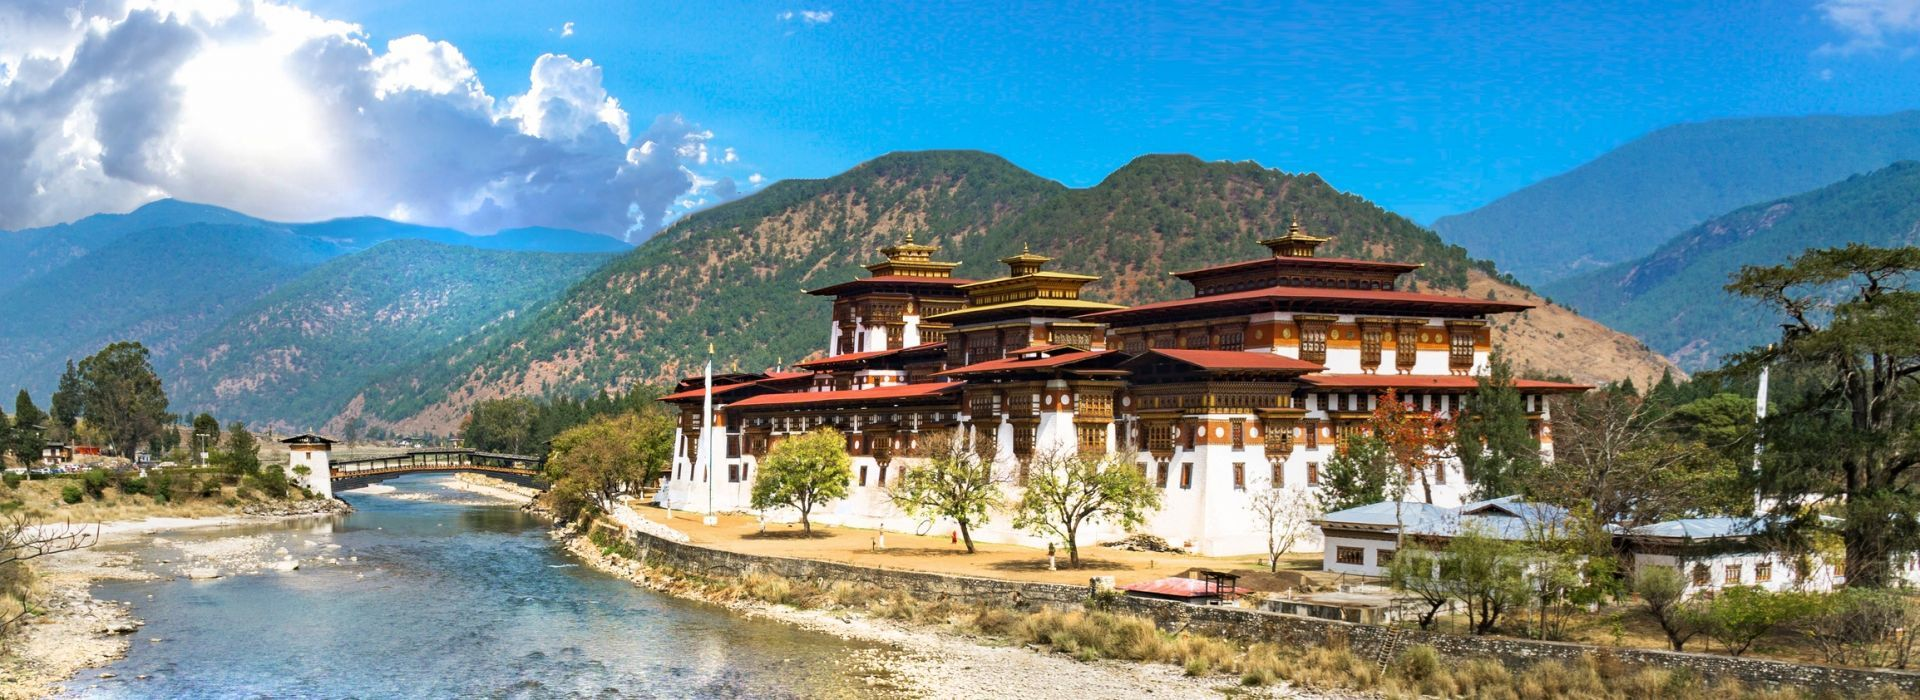 Special interests and hobbies Tours in Tiger's Nest Monastery